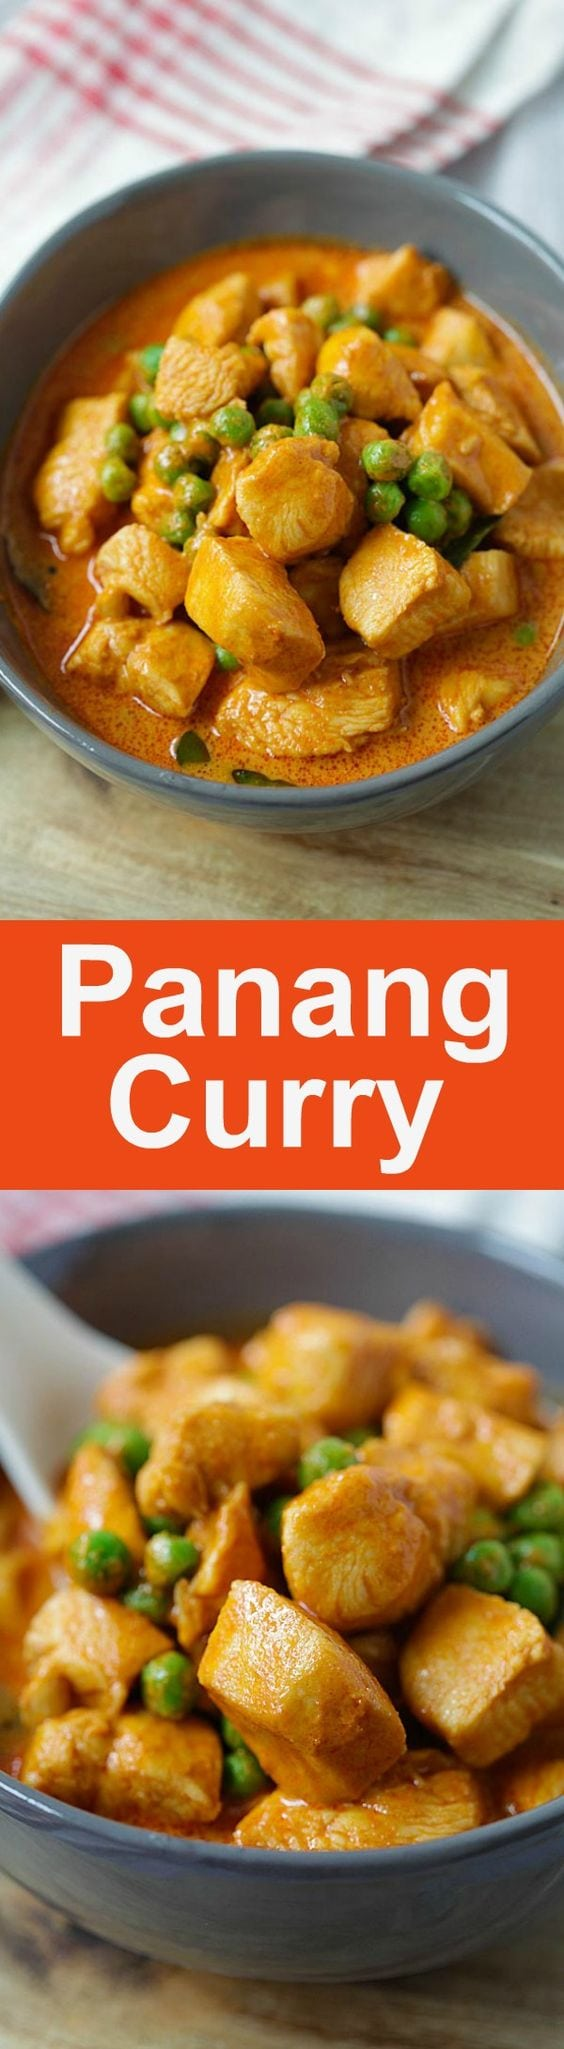 Panang Curry - Thai Panang curry with chicken and green peas. Easy 20-minutes homemade Panang curry recipe that is better than restaurants | rasamalaysia.com